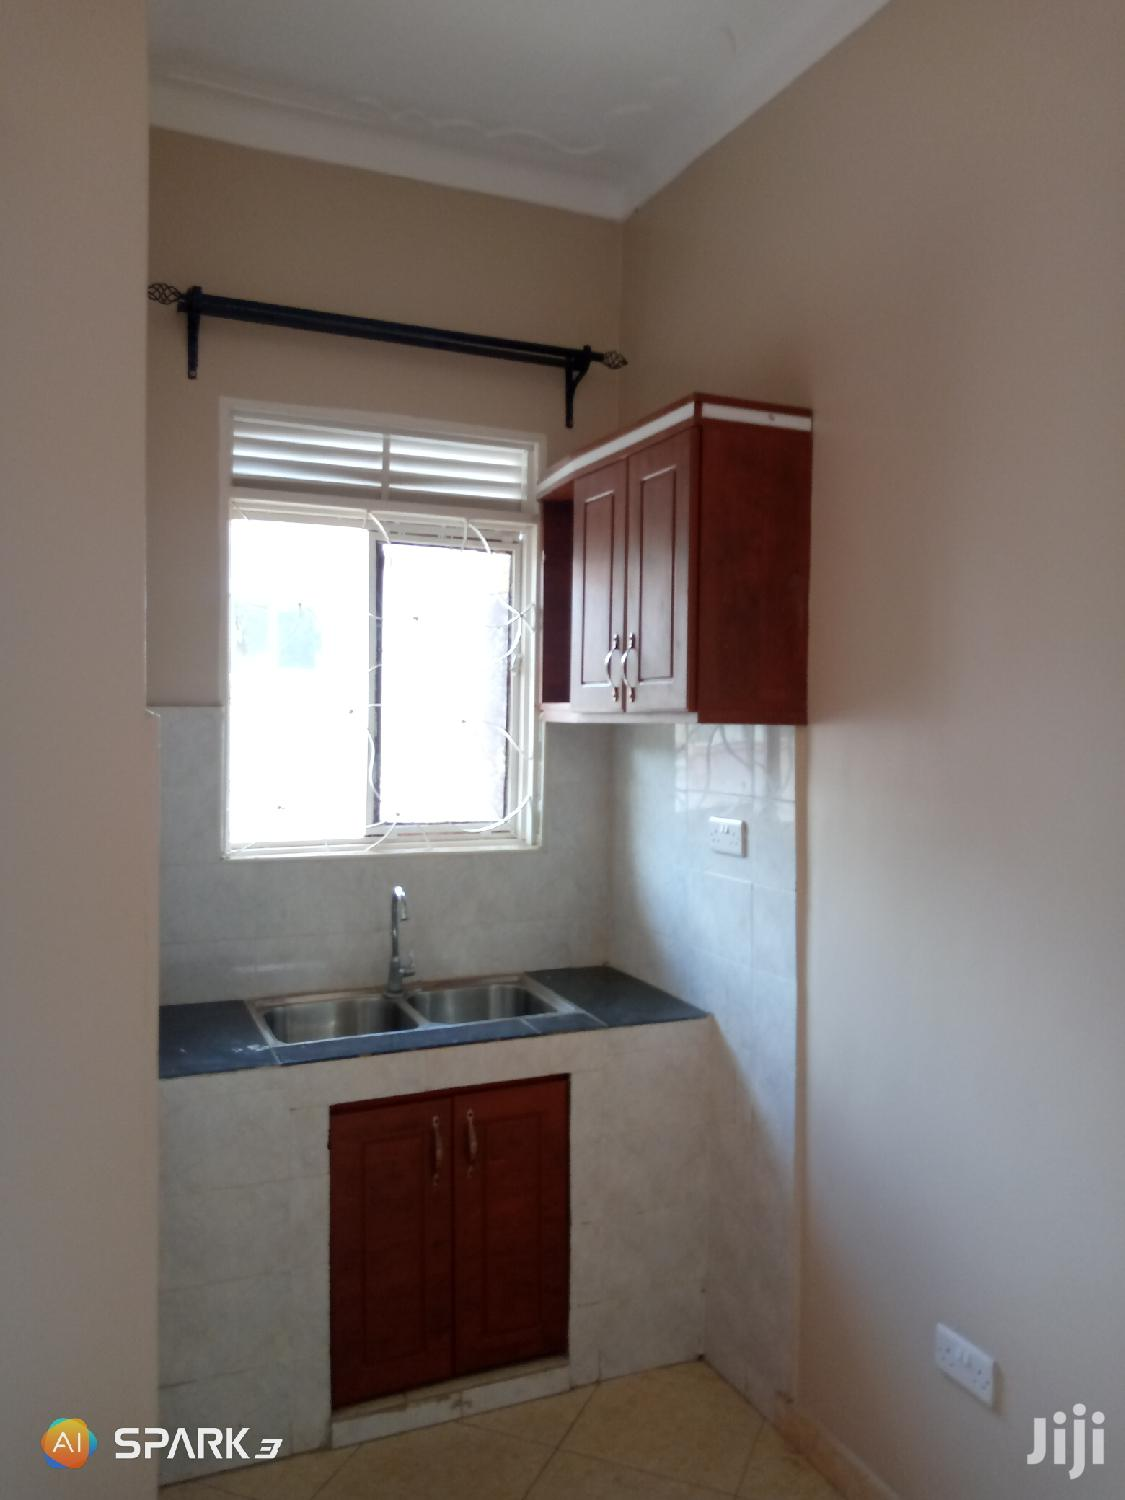 Rental Units For Sale In Kyanja | Houses & Apartments For Sale for sale in Kampala, Central Region, Uganda